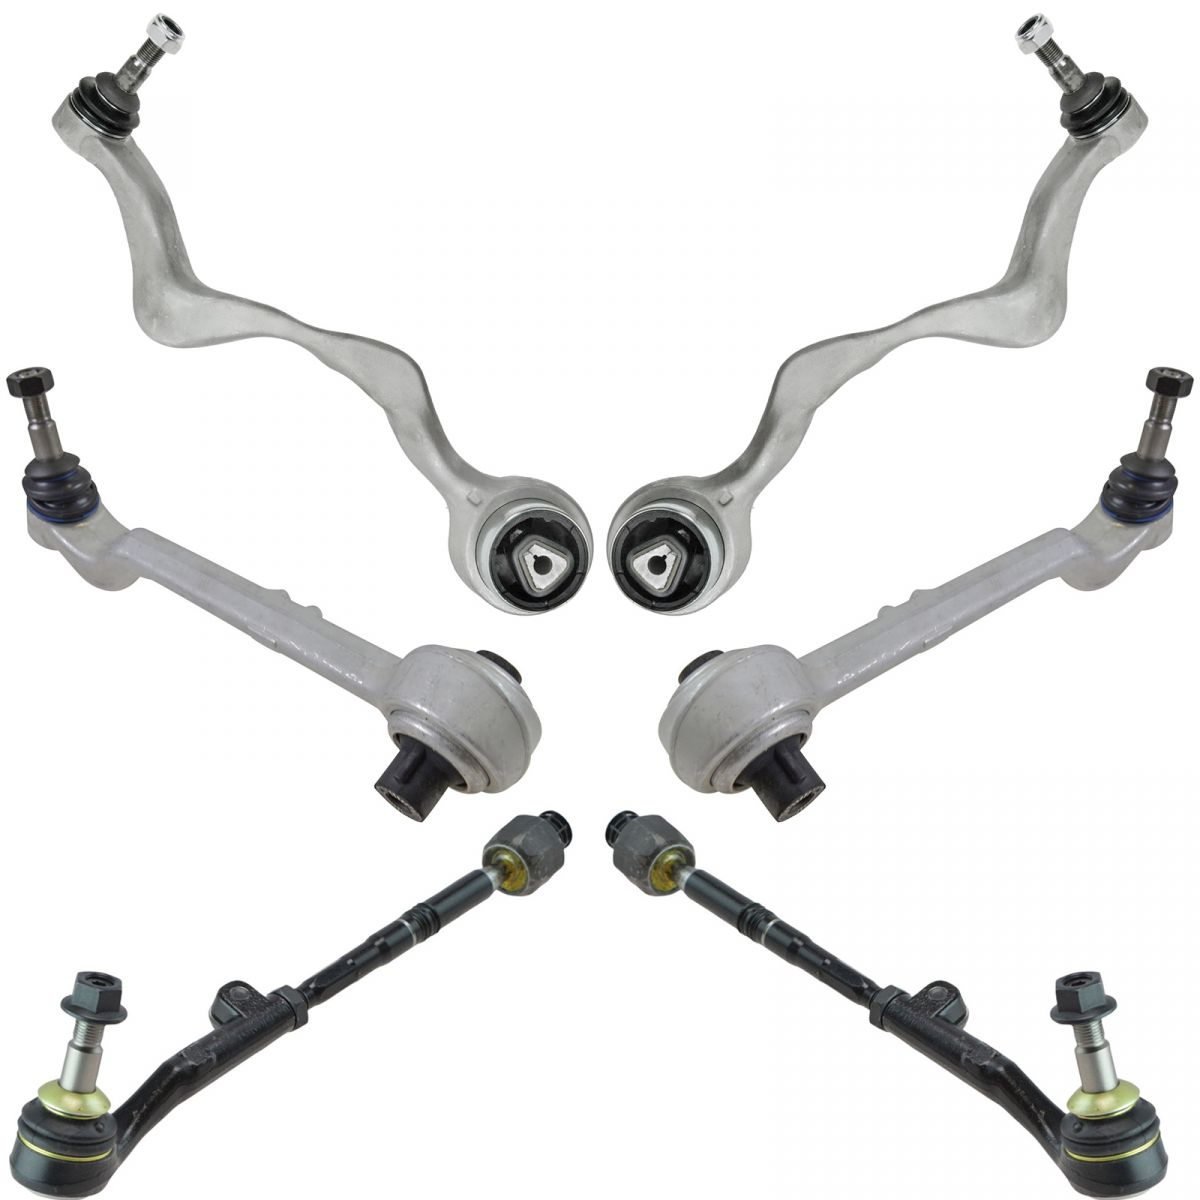 6 Piece Steering & Suspension Kit Control Arms w/ Inner Outer Tie Rod Assemblies